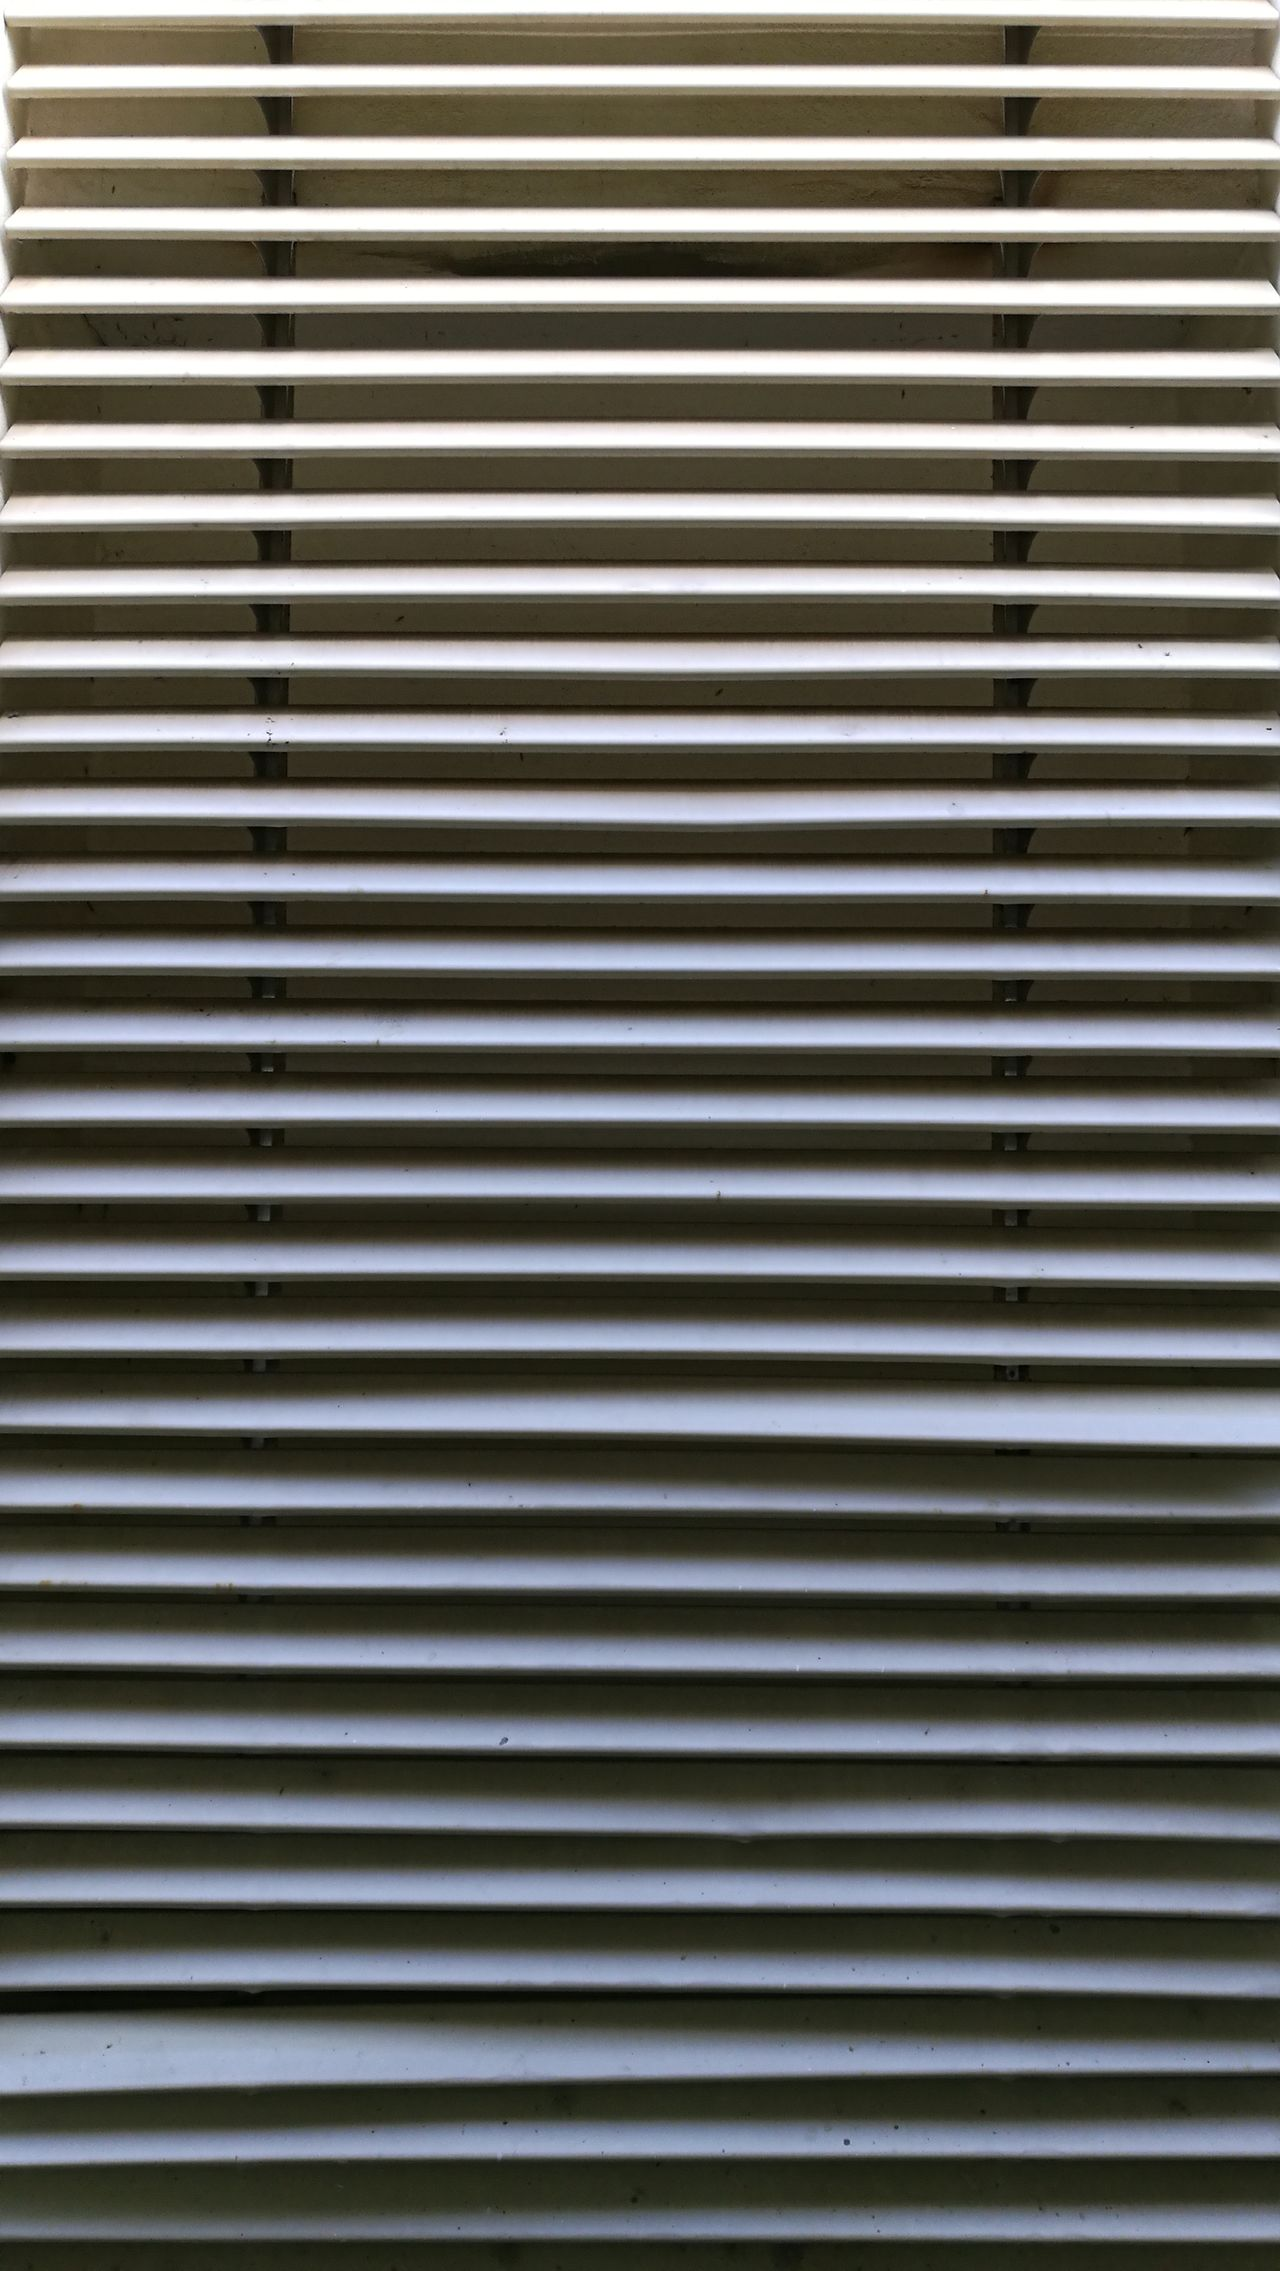 Ventilation Pattern Backgrounds Full Frame No People Textured  Metal Corrugated Iron Day Architecture Close-up Outdoors Ventilation Holes Ventilation Ventilator